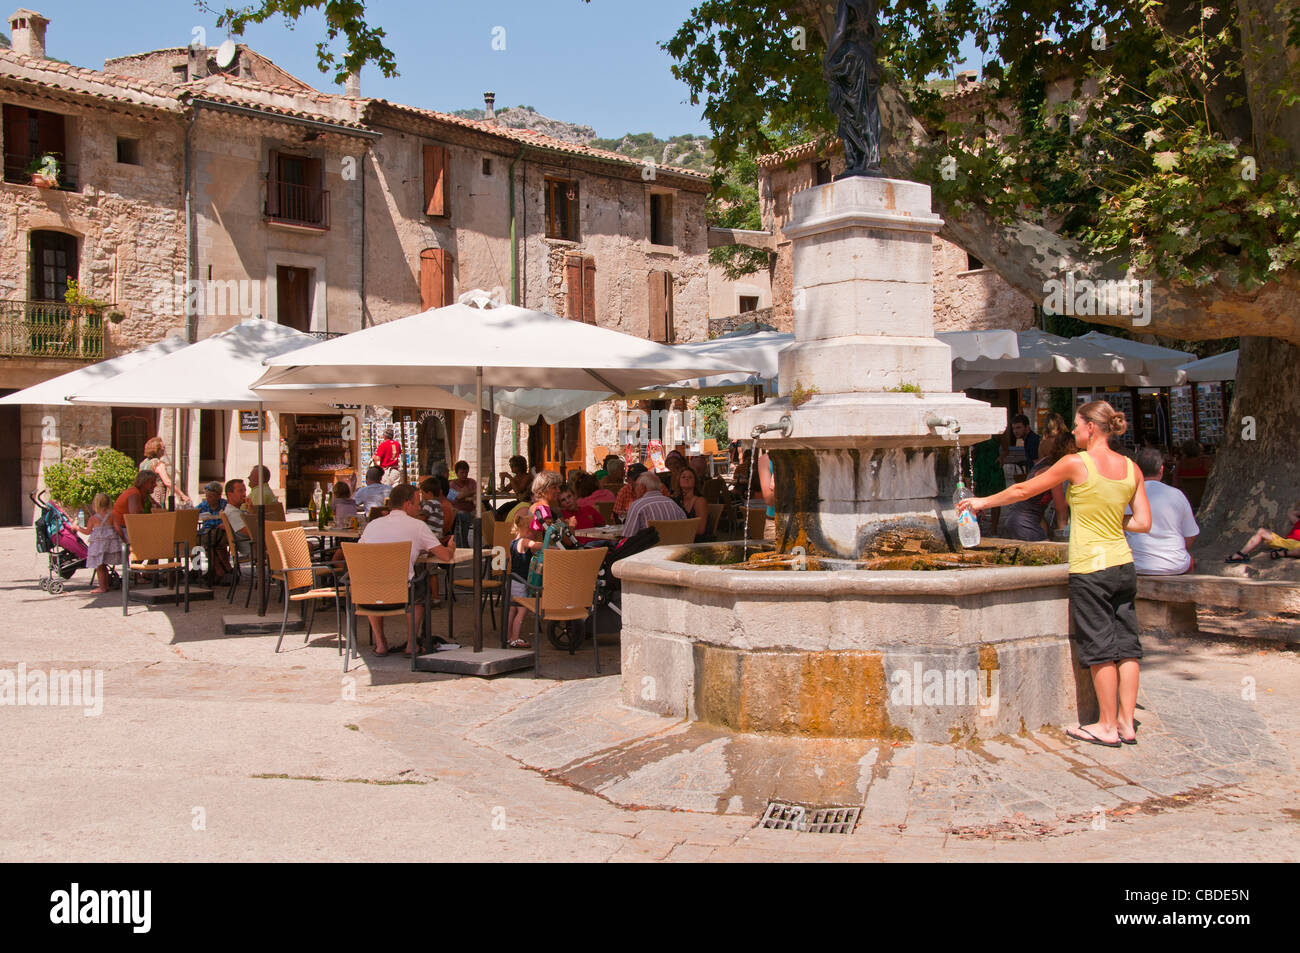 People enjoying drinks on a hot summerday at a pavement cafe by fountain in the hill top village of St Guilhem le Stock Photo